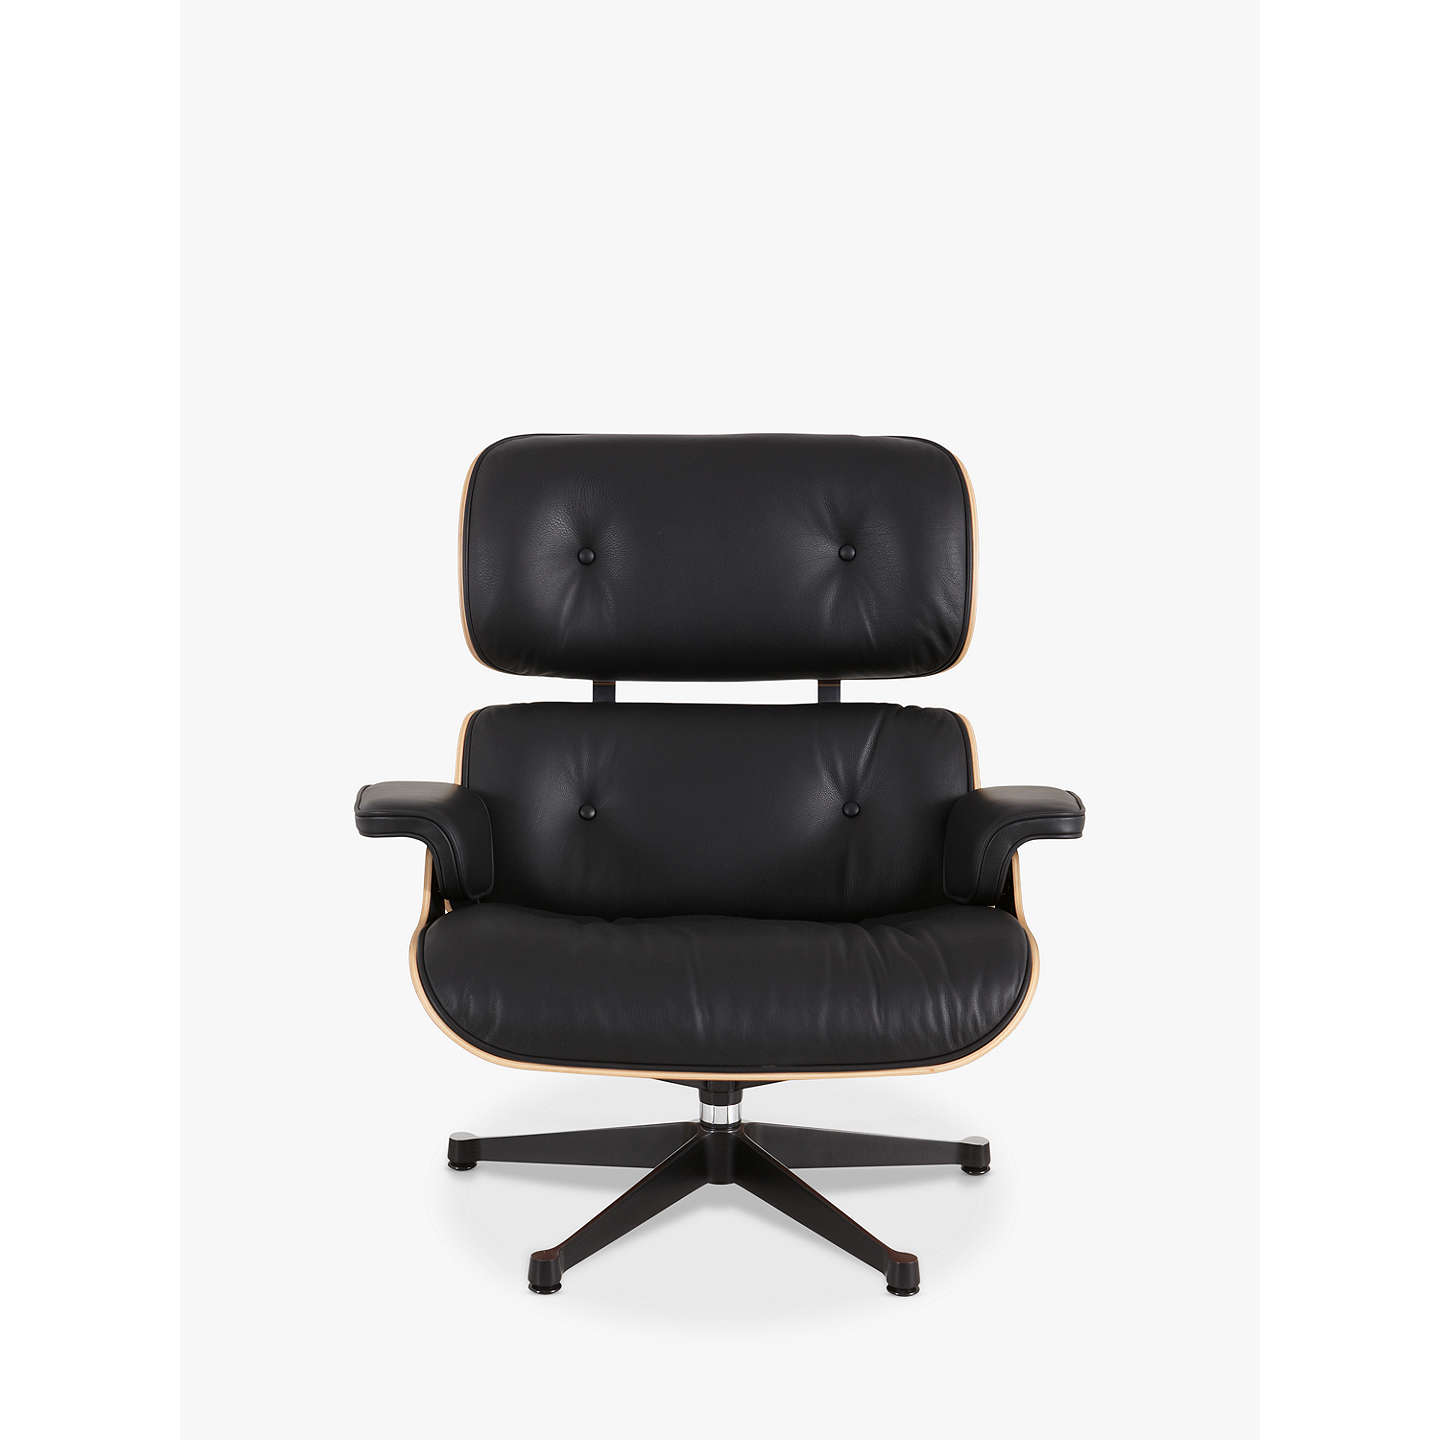 Vitra Eames Lounge Armchair Black Pallisander S At Johnlewis Com